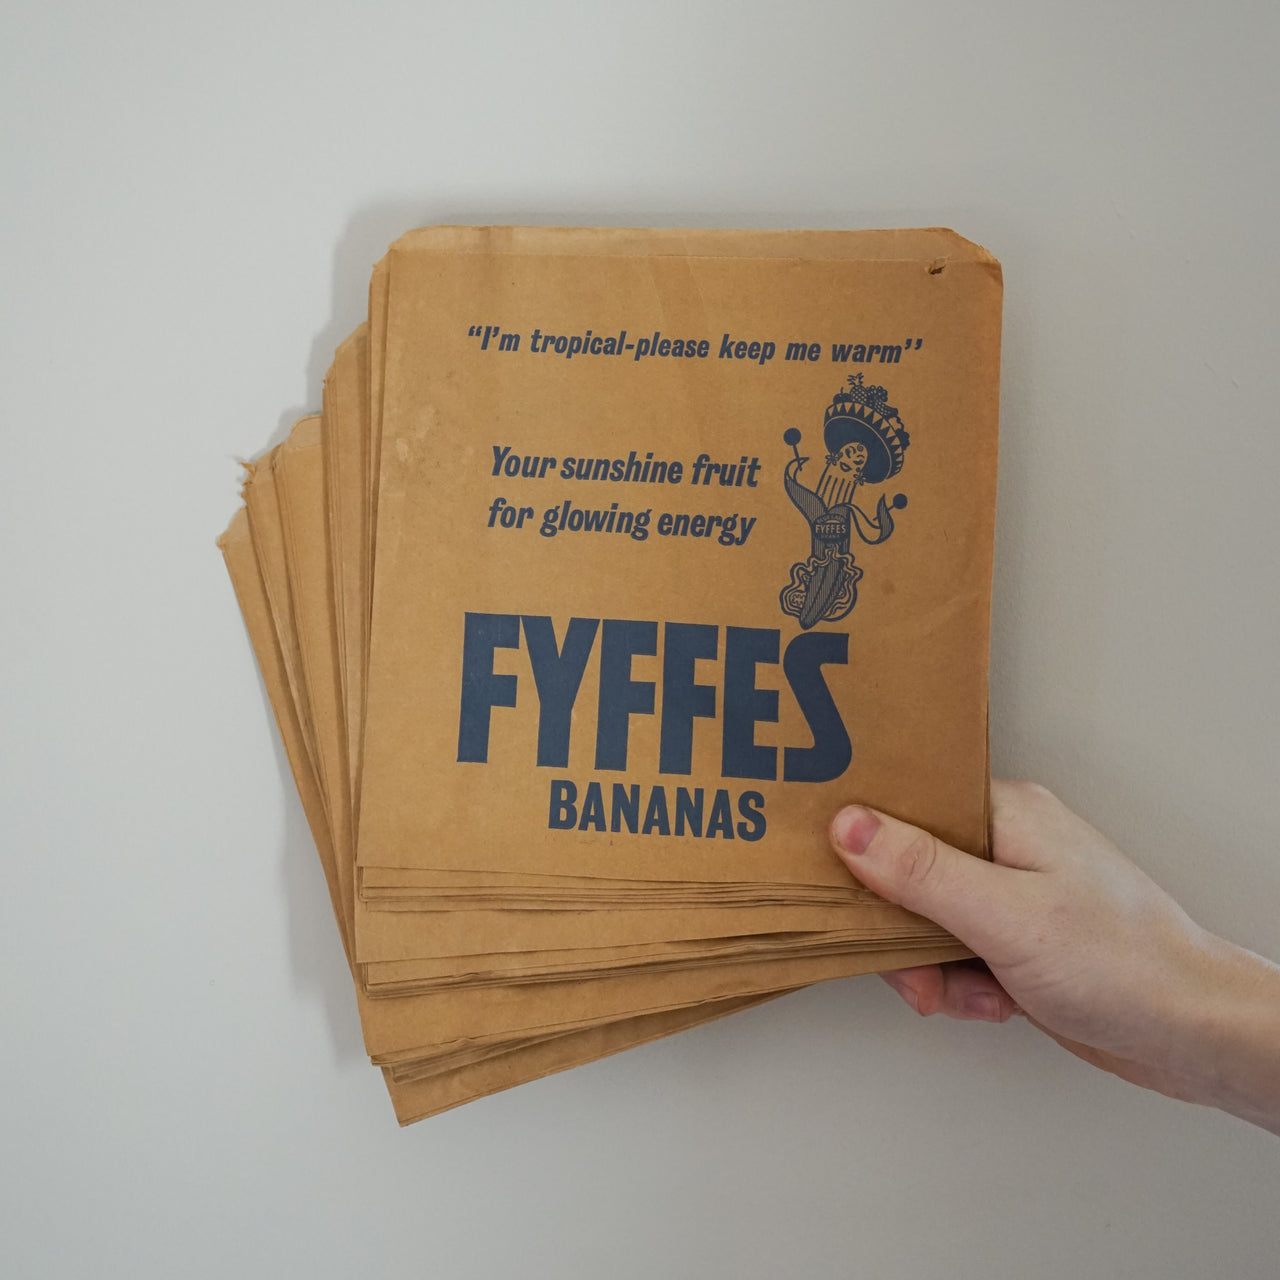 Unused 'Fyffes' Green Grocers Paper Bags